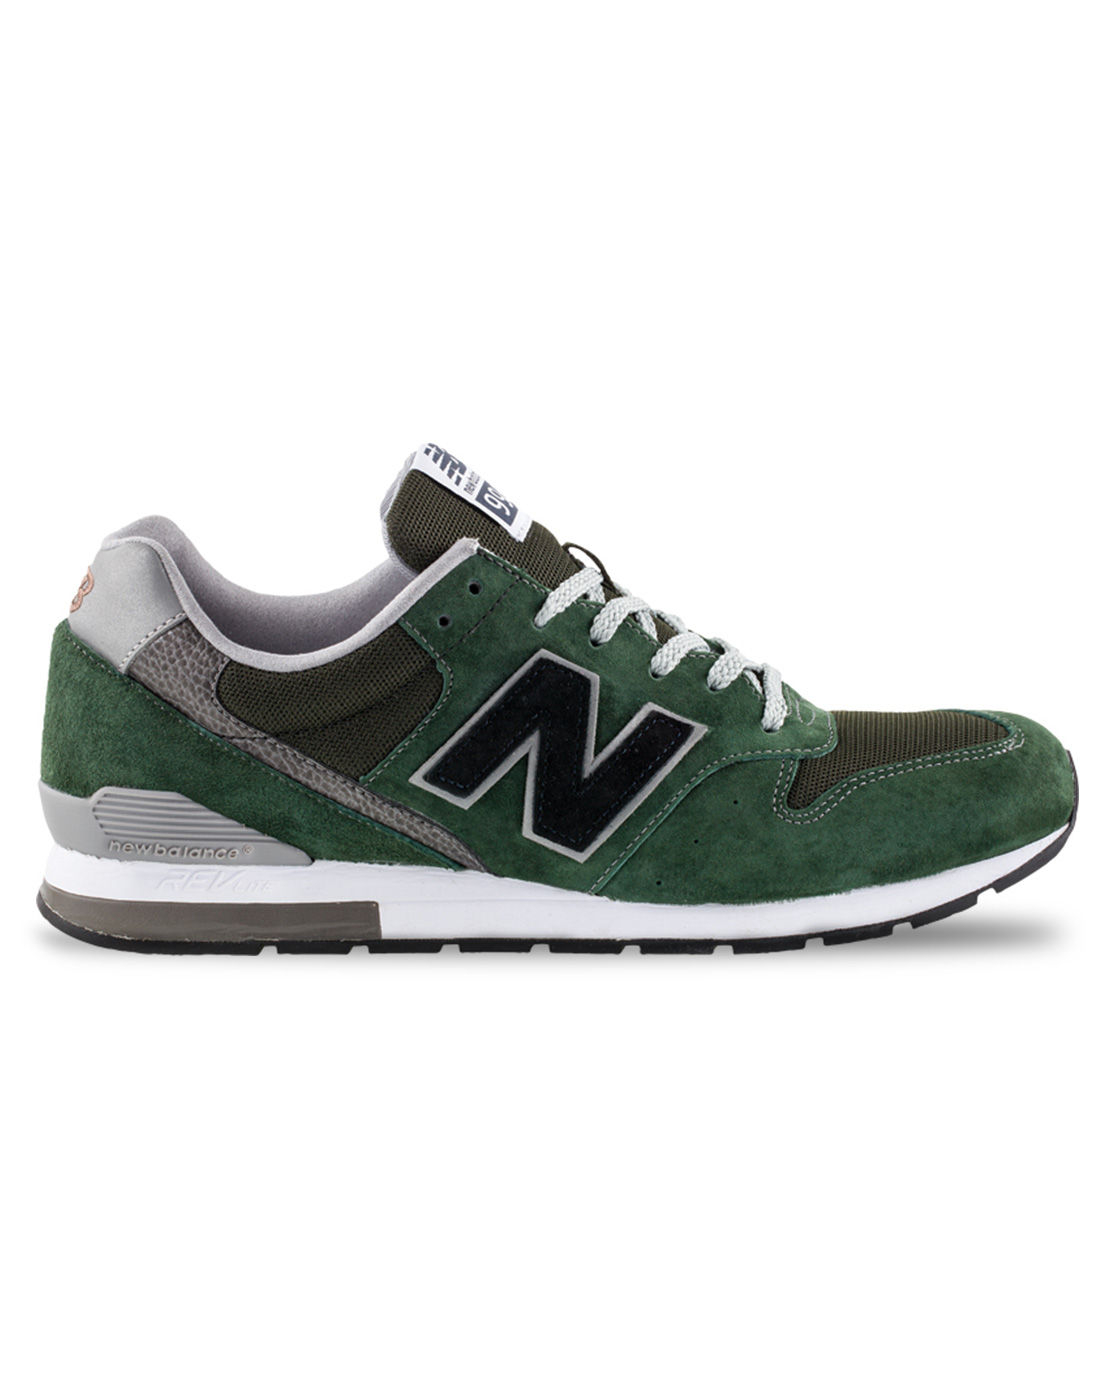 new balance New balance sneakers sale: save up to 40% shop from shoescom's huge selection of new balance shoes and save big over 350 styles available, including the 990v4, 928v3, 1080v7, minimus 10, and more free shipping and exchanges on all new balance running and walking shoes, and a 100% price guarantee.